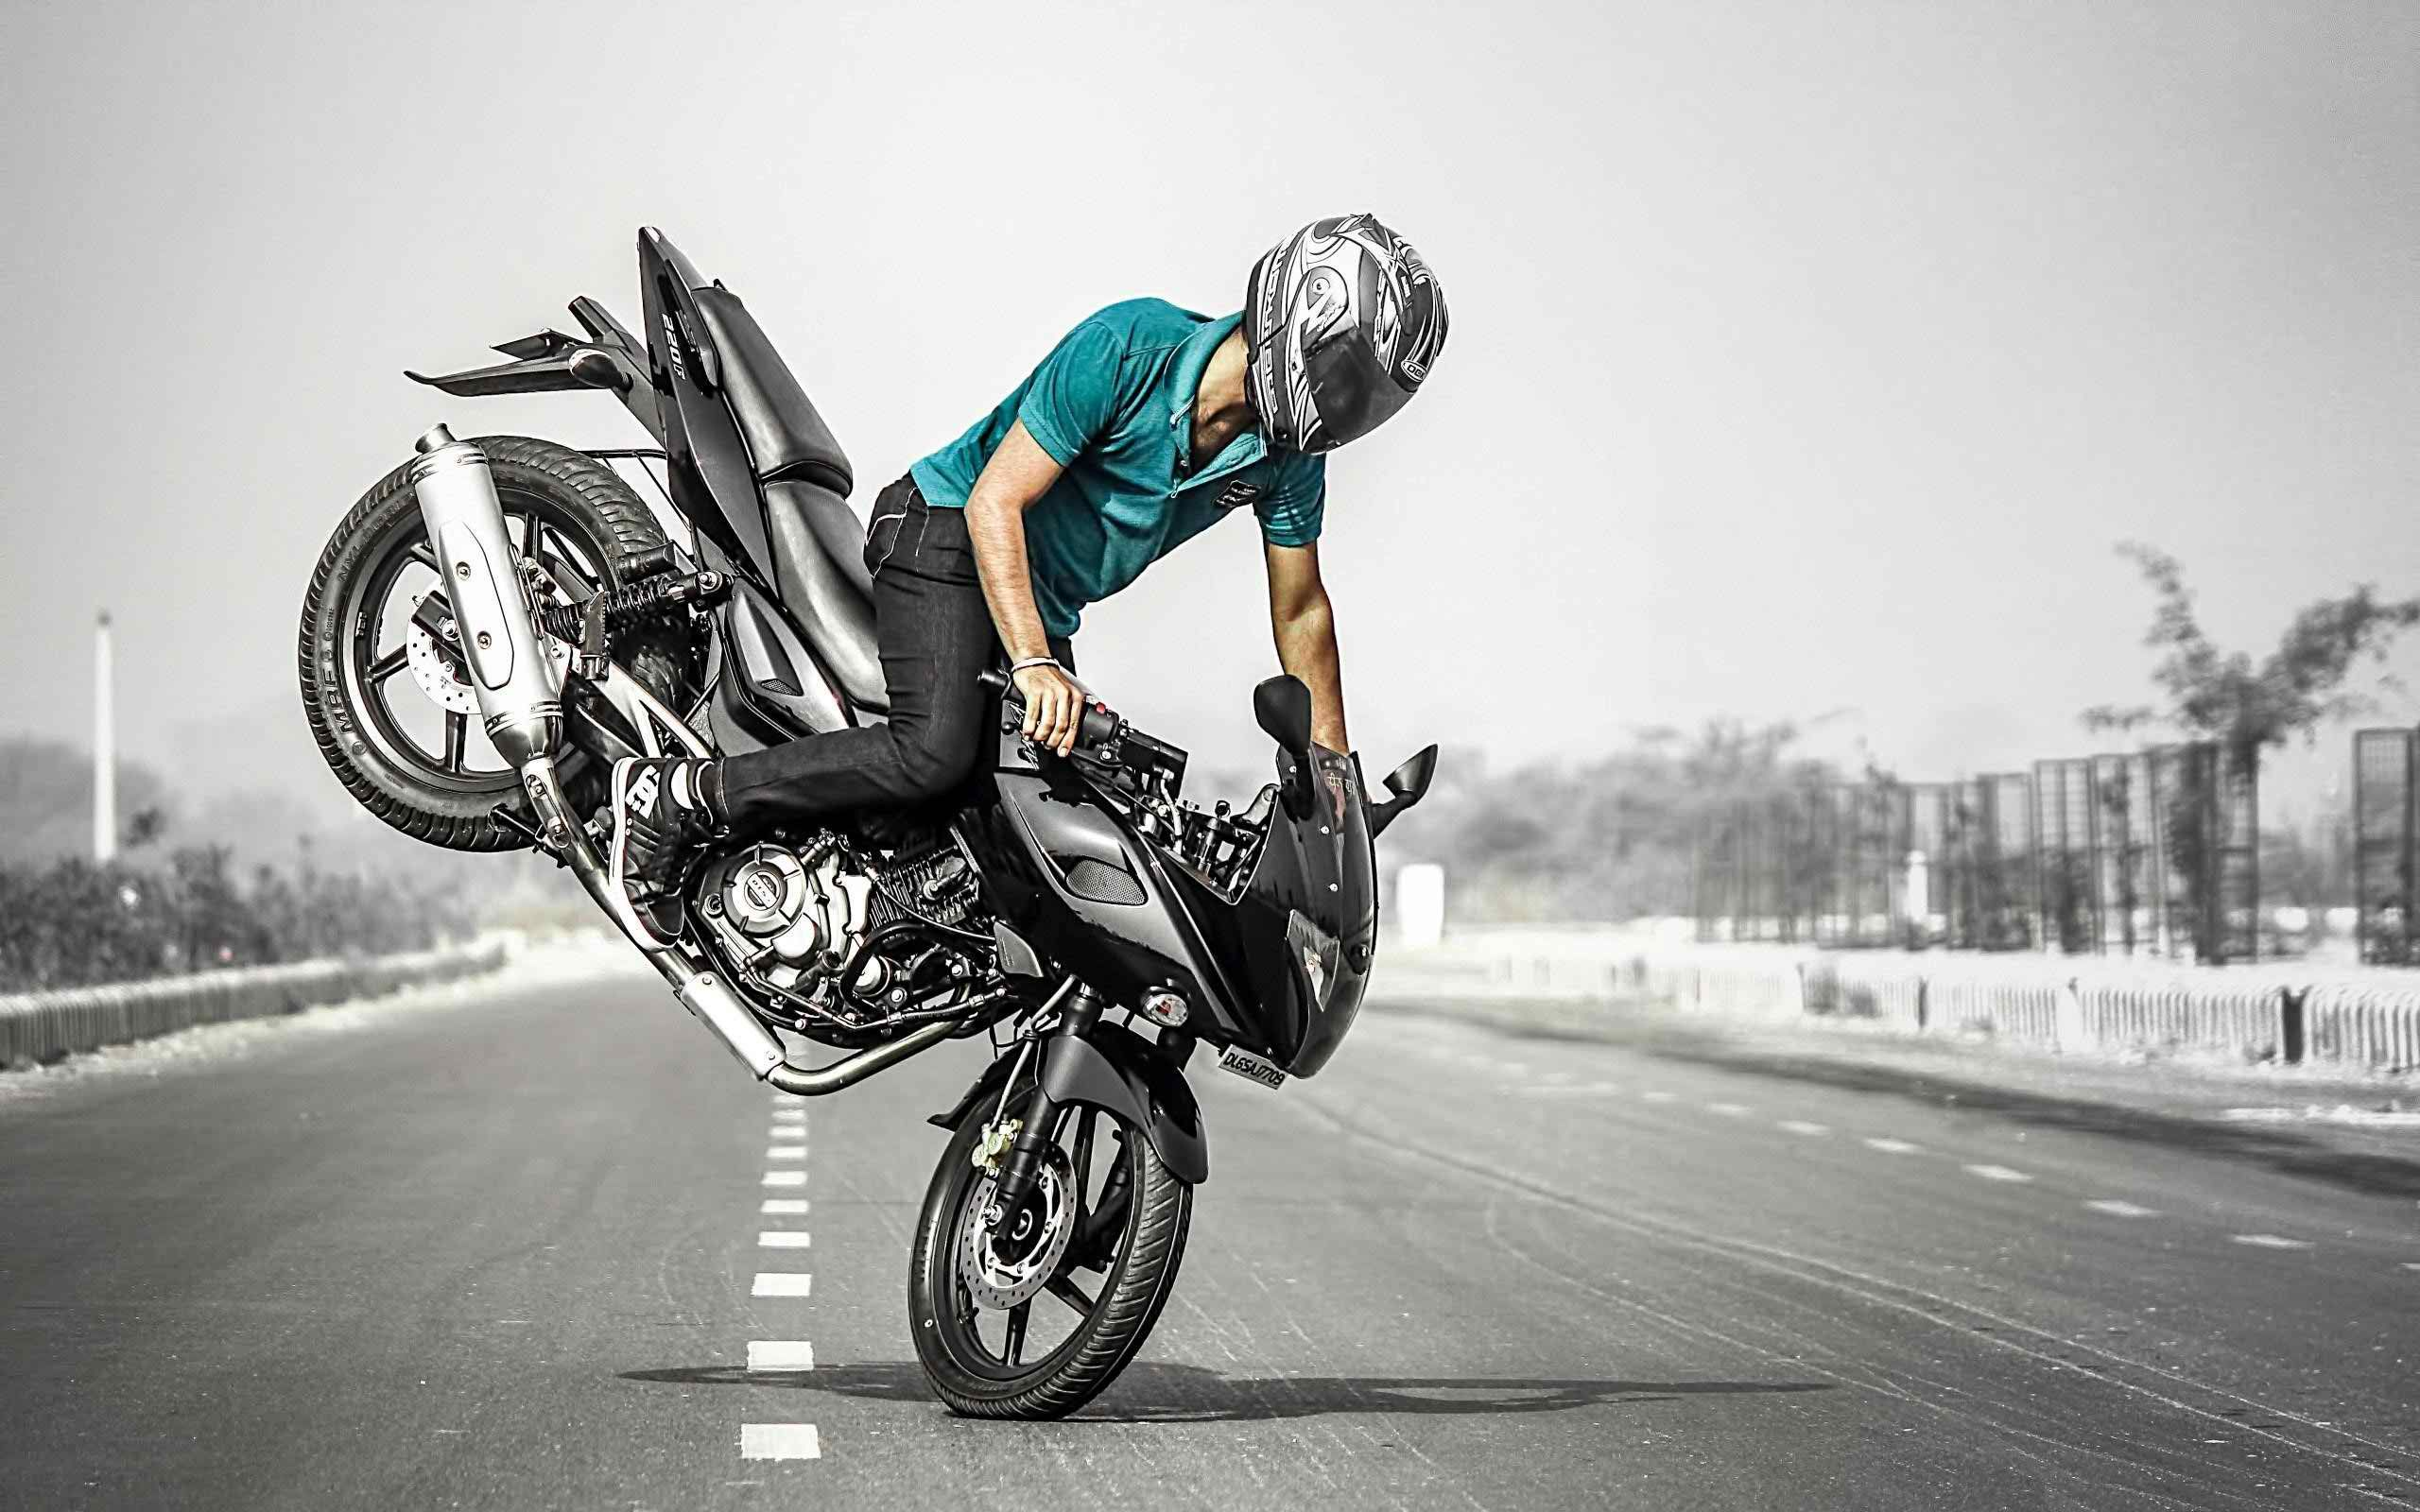 Blue Bike Stunt Hd Wallpaper: Bike Stunt HD Wallpapers